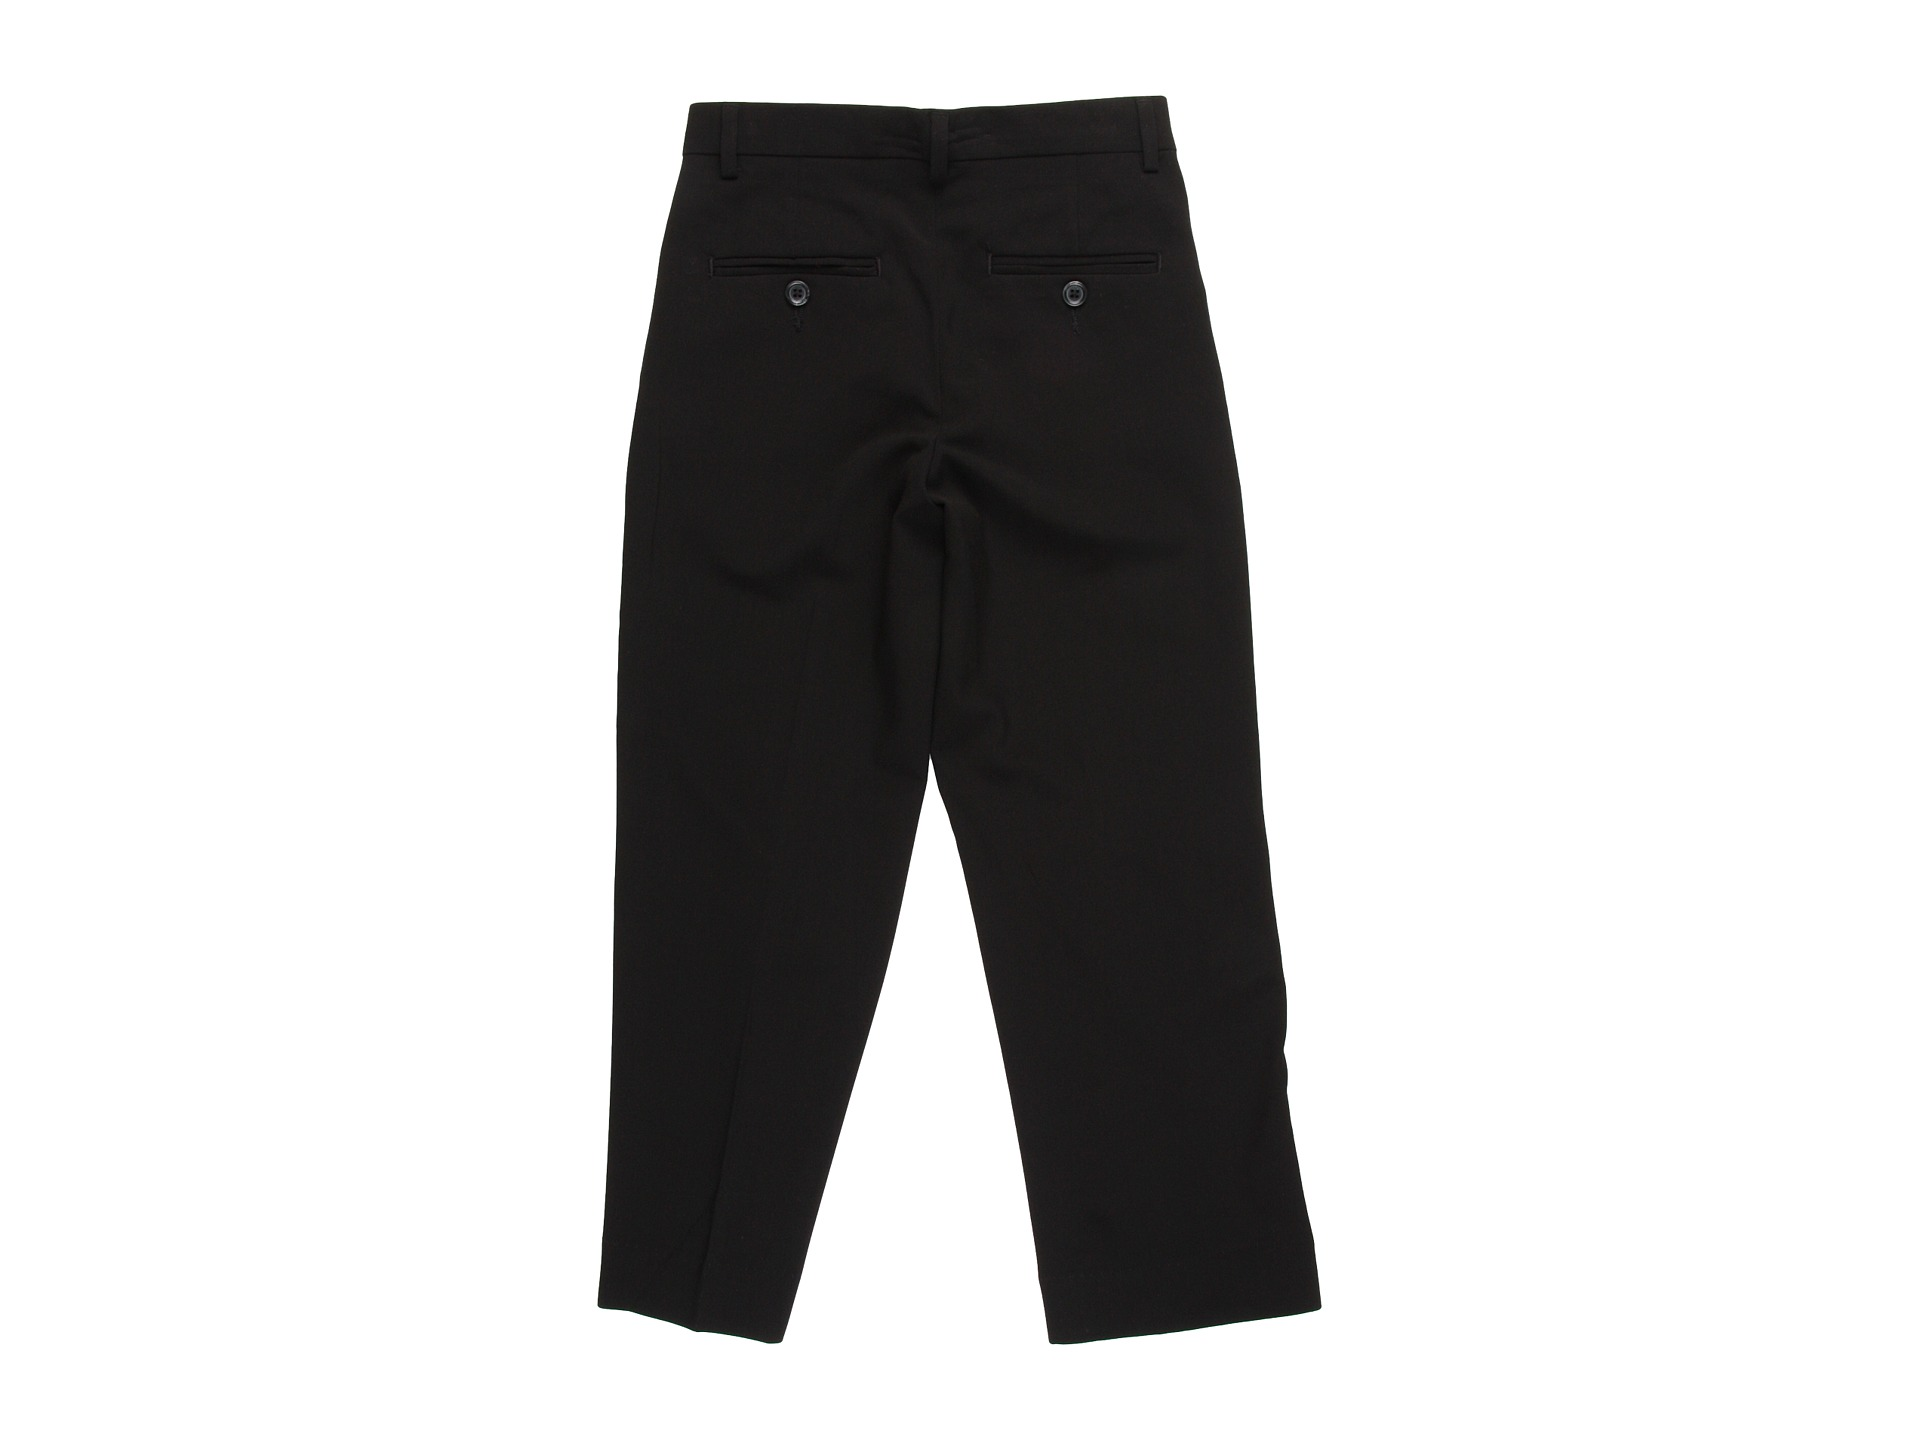 Calvin Klein Kids Dress Pant (Big Kids) at Zappos.com